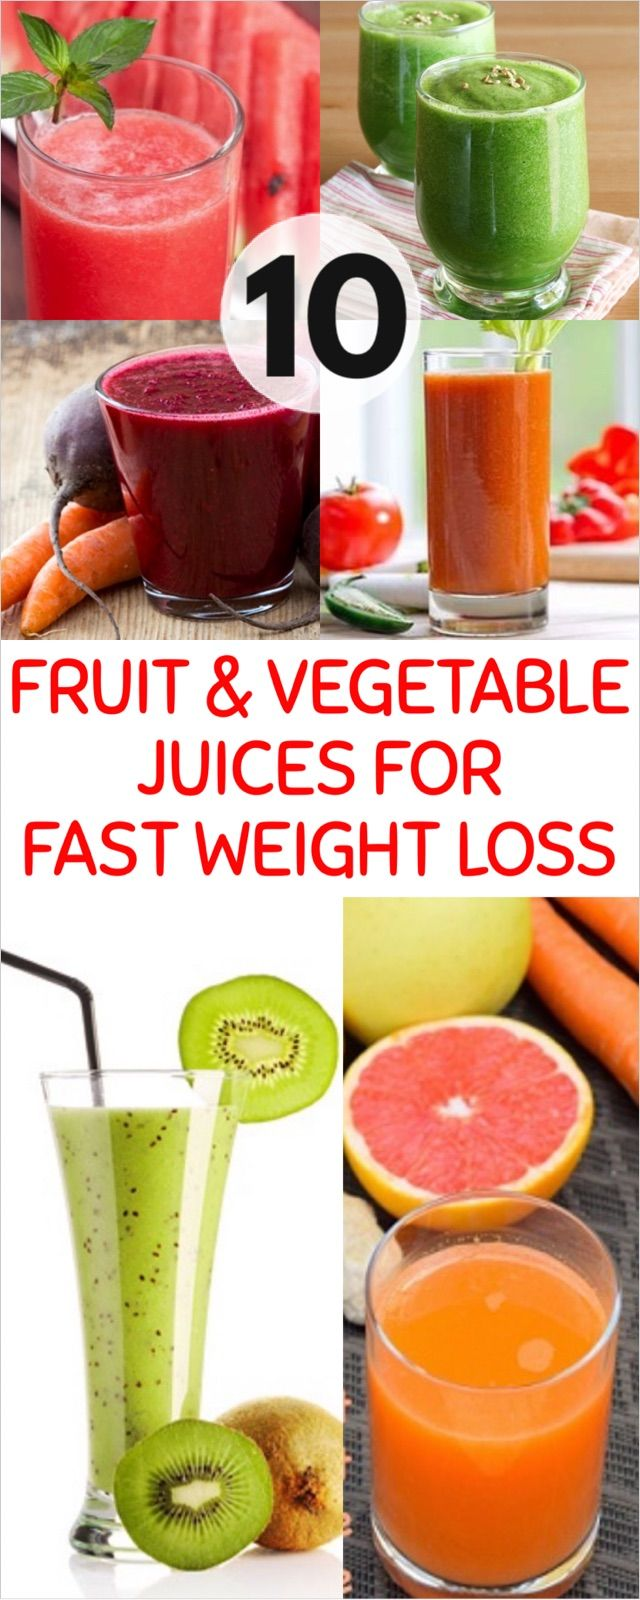 Inculcating certain healthy habits in your daily diet can bring about remarkable changes in your life and health. It is best to clarify a few confusions that are associated with juicing. Juicing on an occasional basis while gorging on unhealthy foods and living a sedentary lifestyle can't help in losing weight. It is a healthy […]